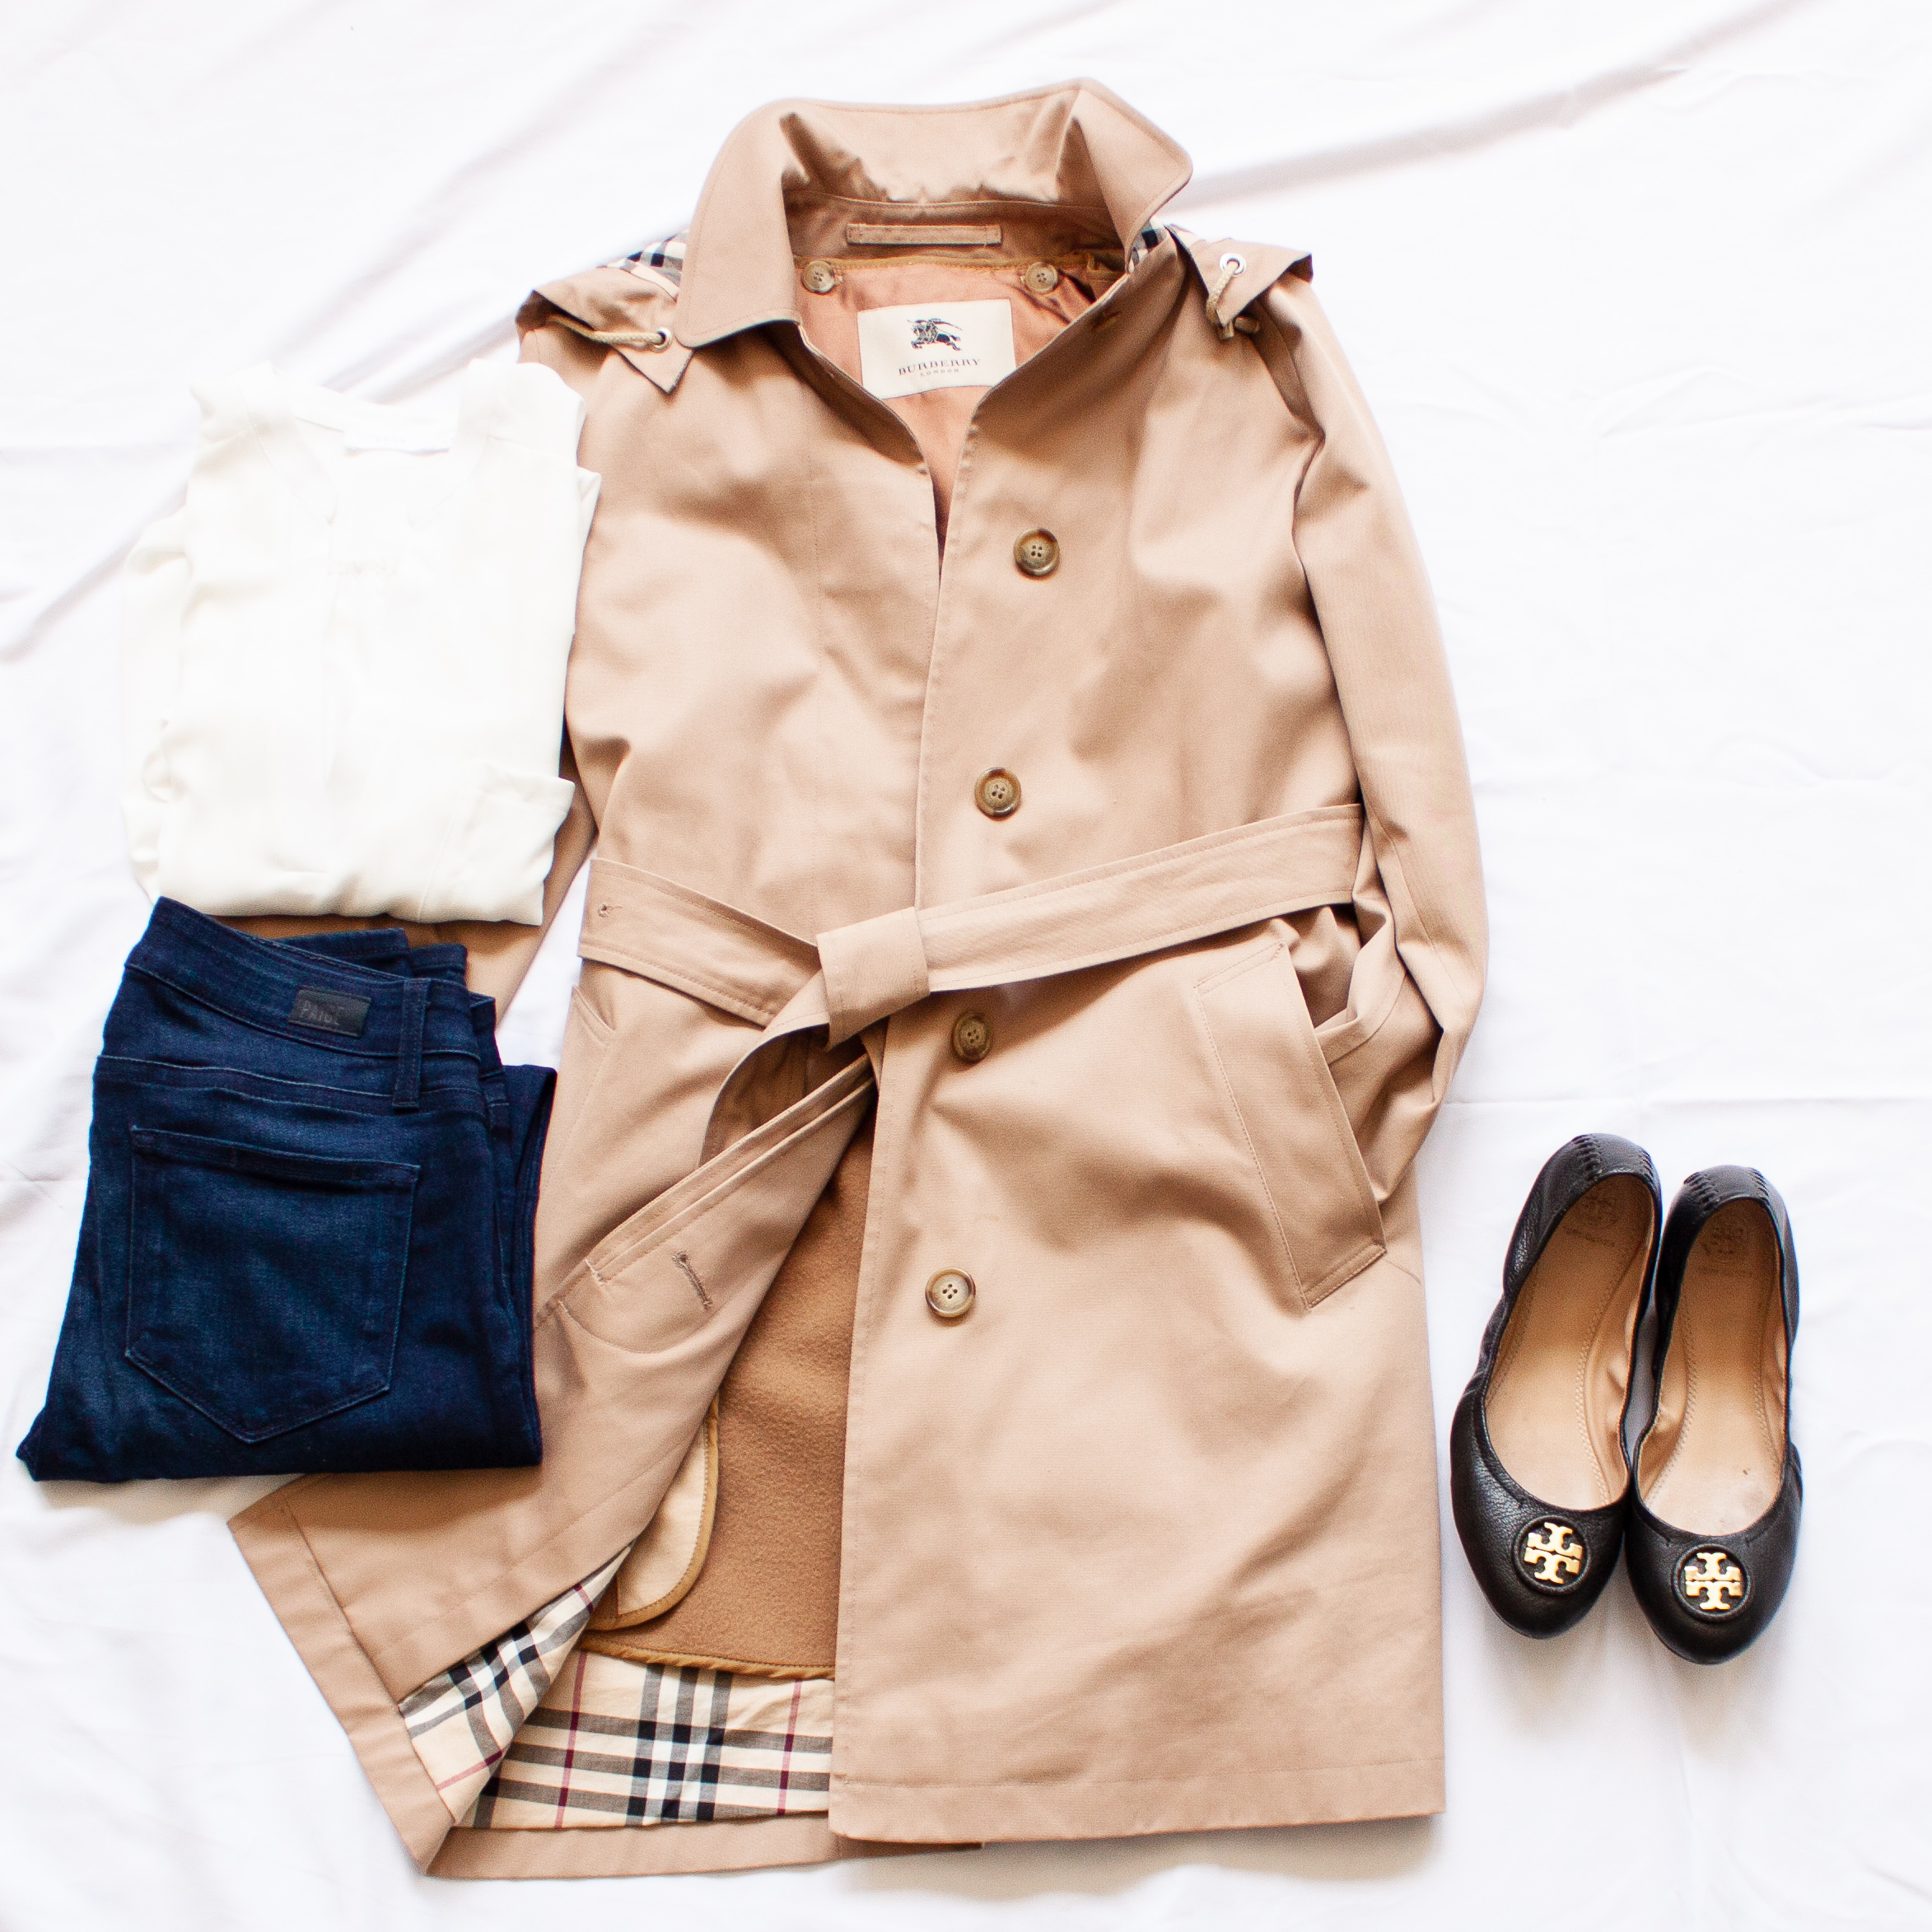 nyc bound burberry trench coat